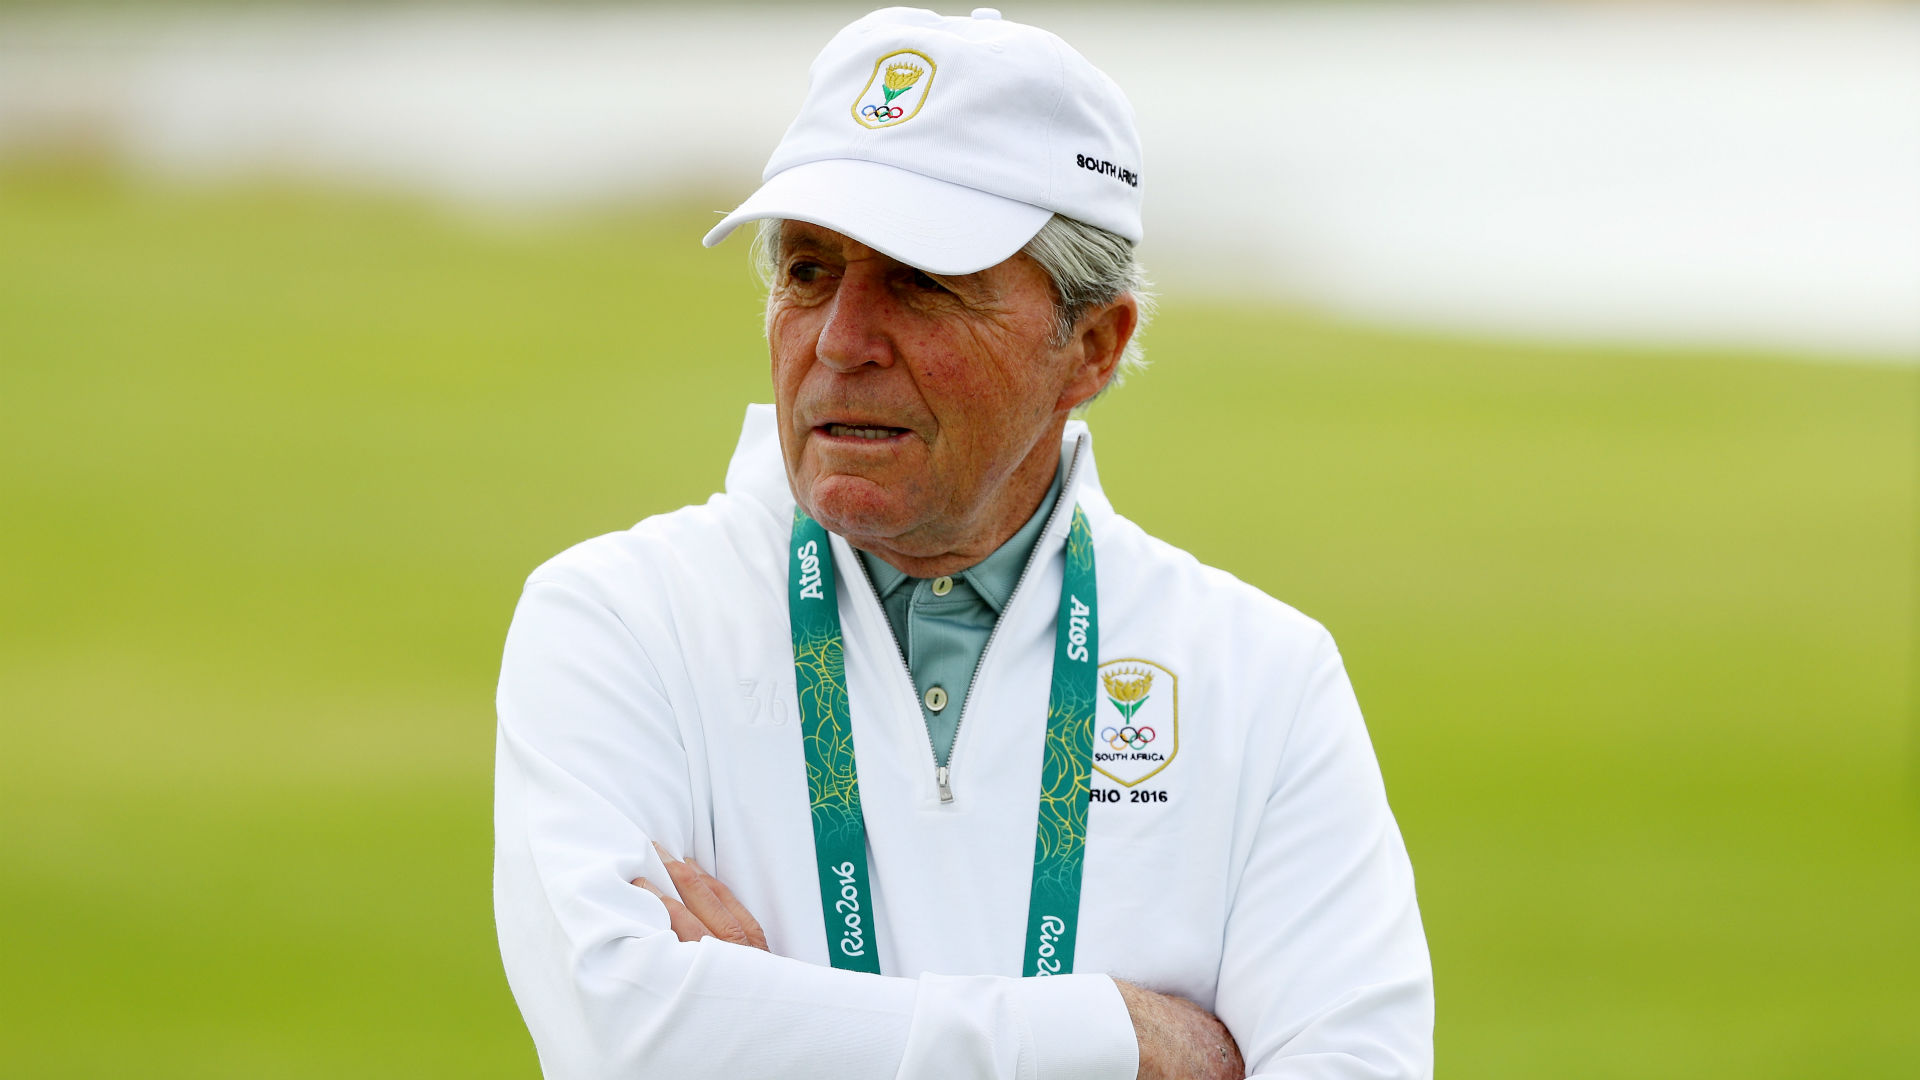 Gary Player once gave golf tips to Elvis Presley